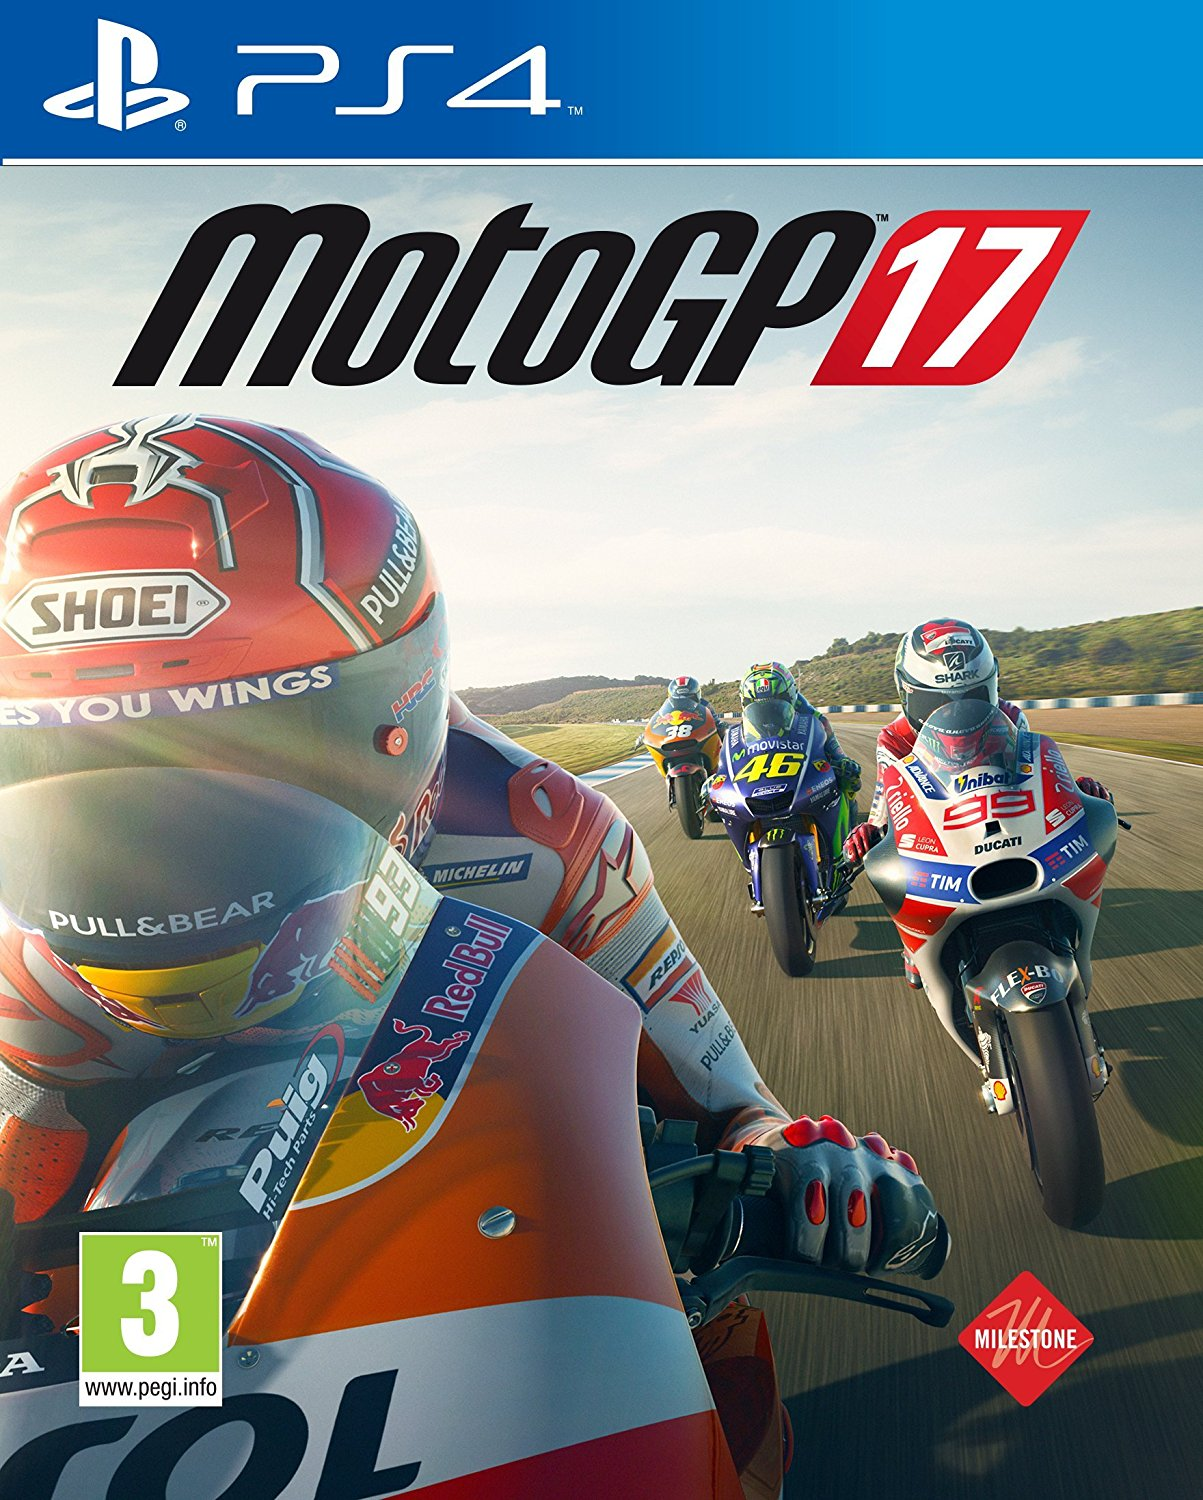 A Com Games On Ps4 : New games motogp ps pc xbox one the